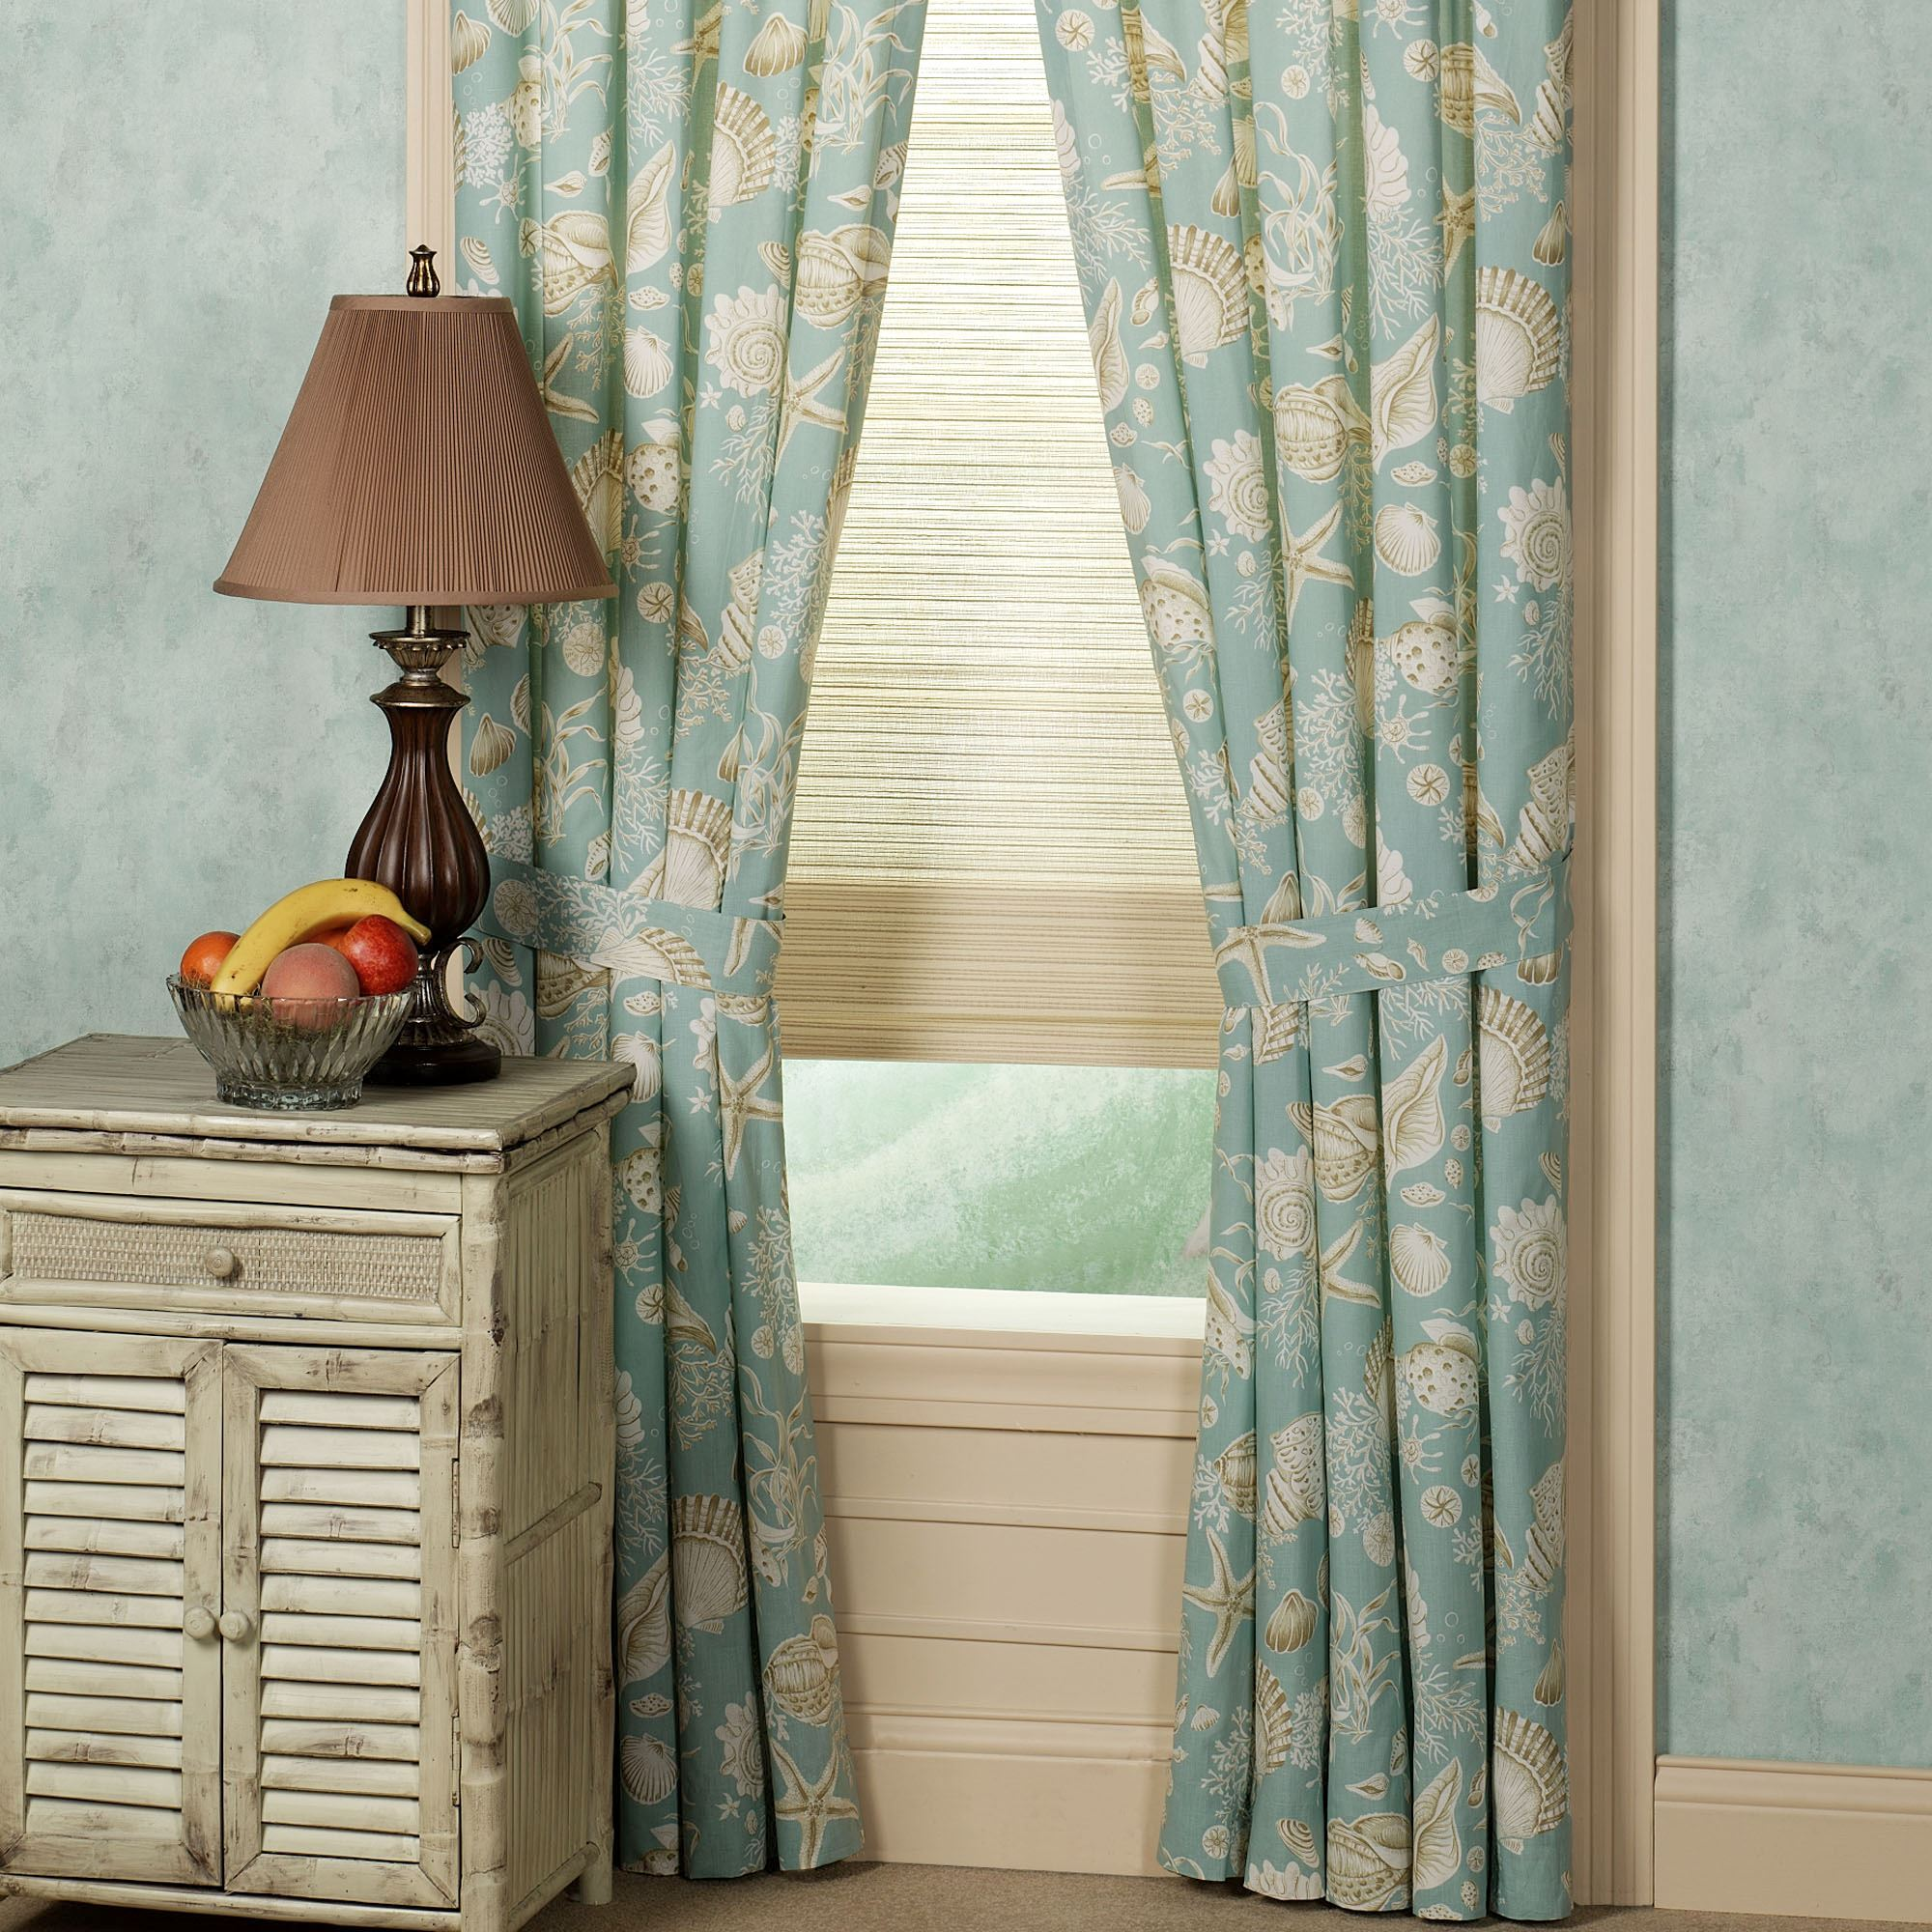 to hardware shell rods and in pack at sheffield brand finials treatments coral window soft gold curtains value rod find of garden online curtain products by home storemeister